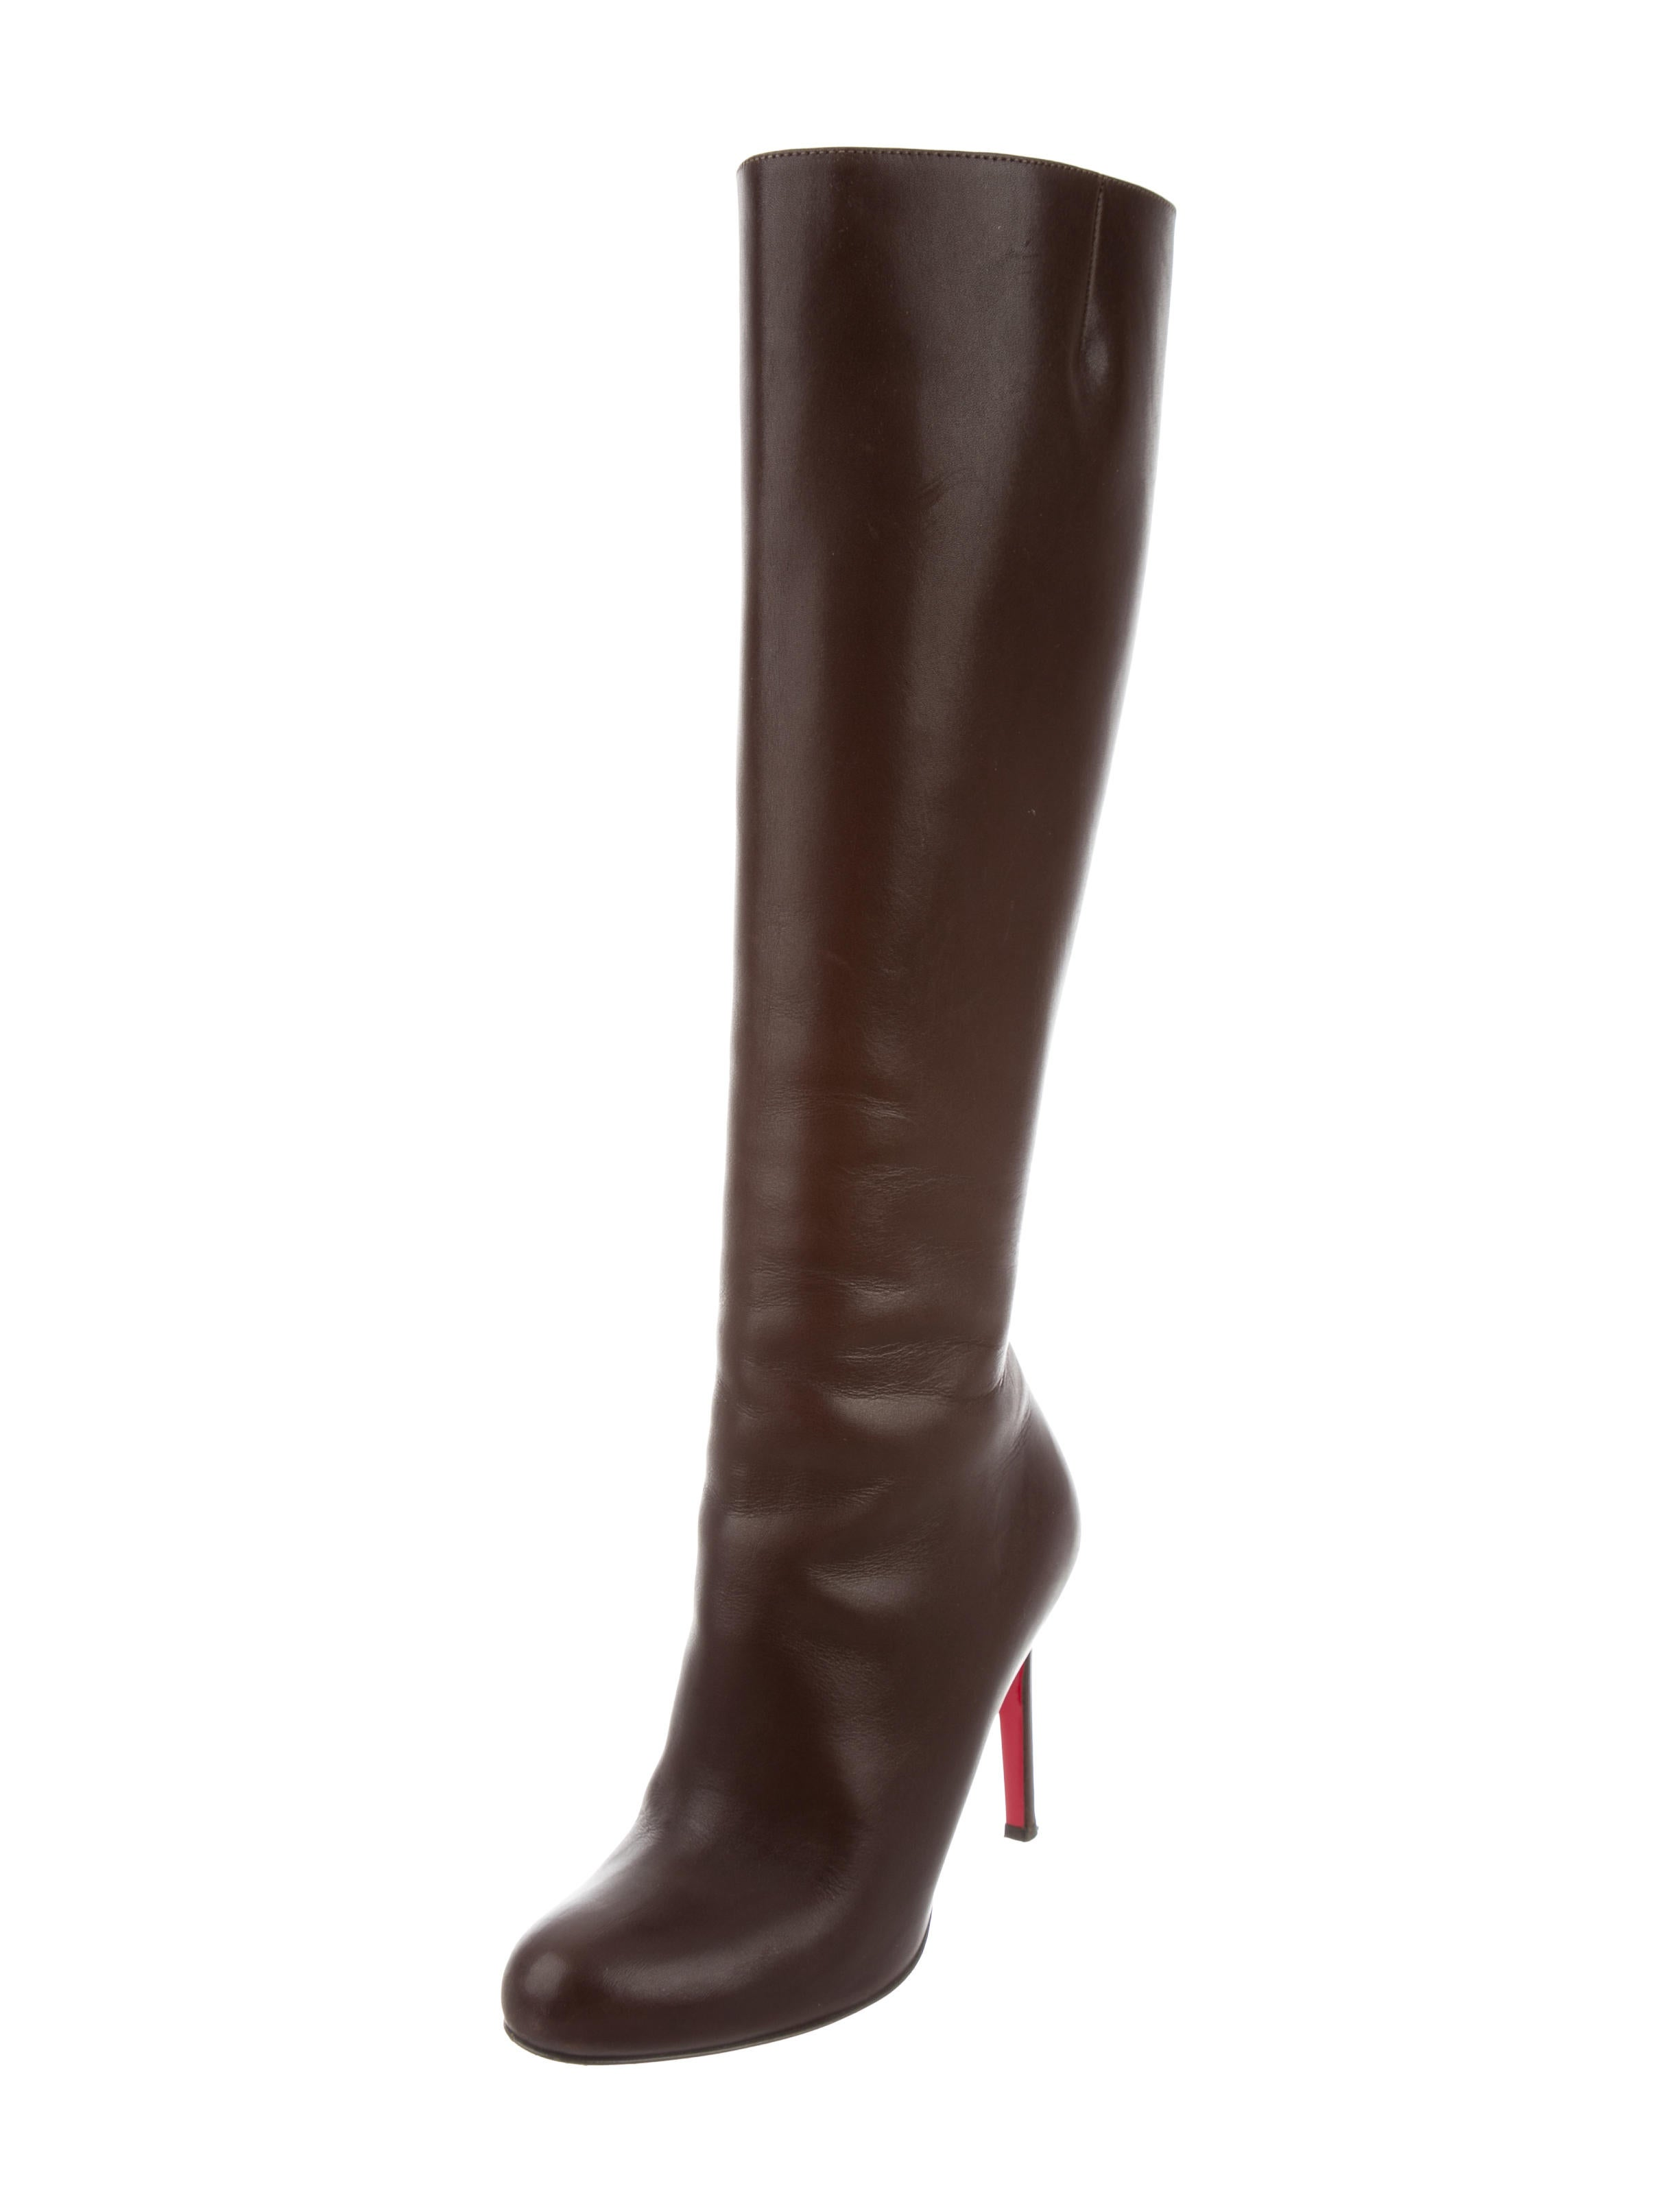 christian louboutin leather knee high boots shoes